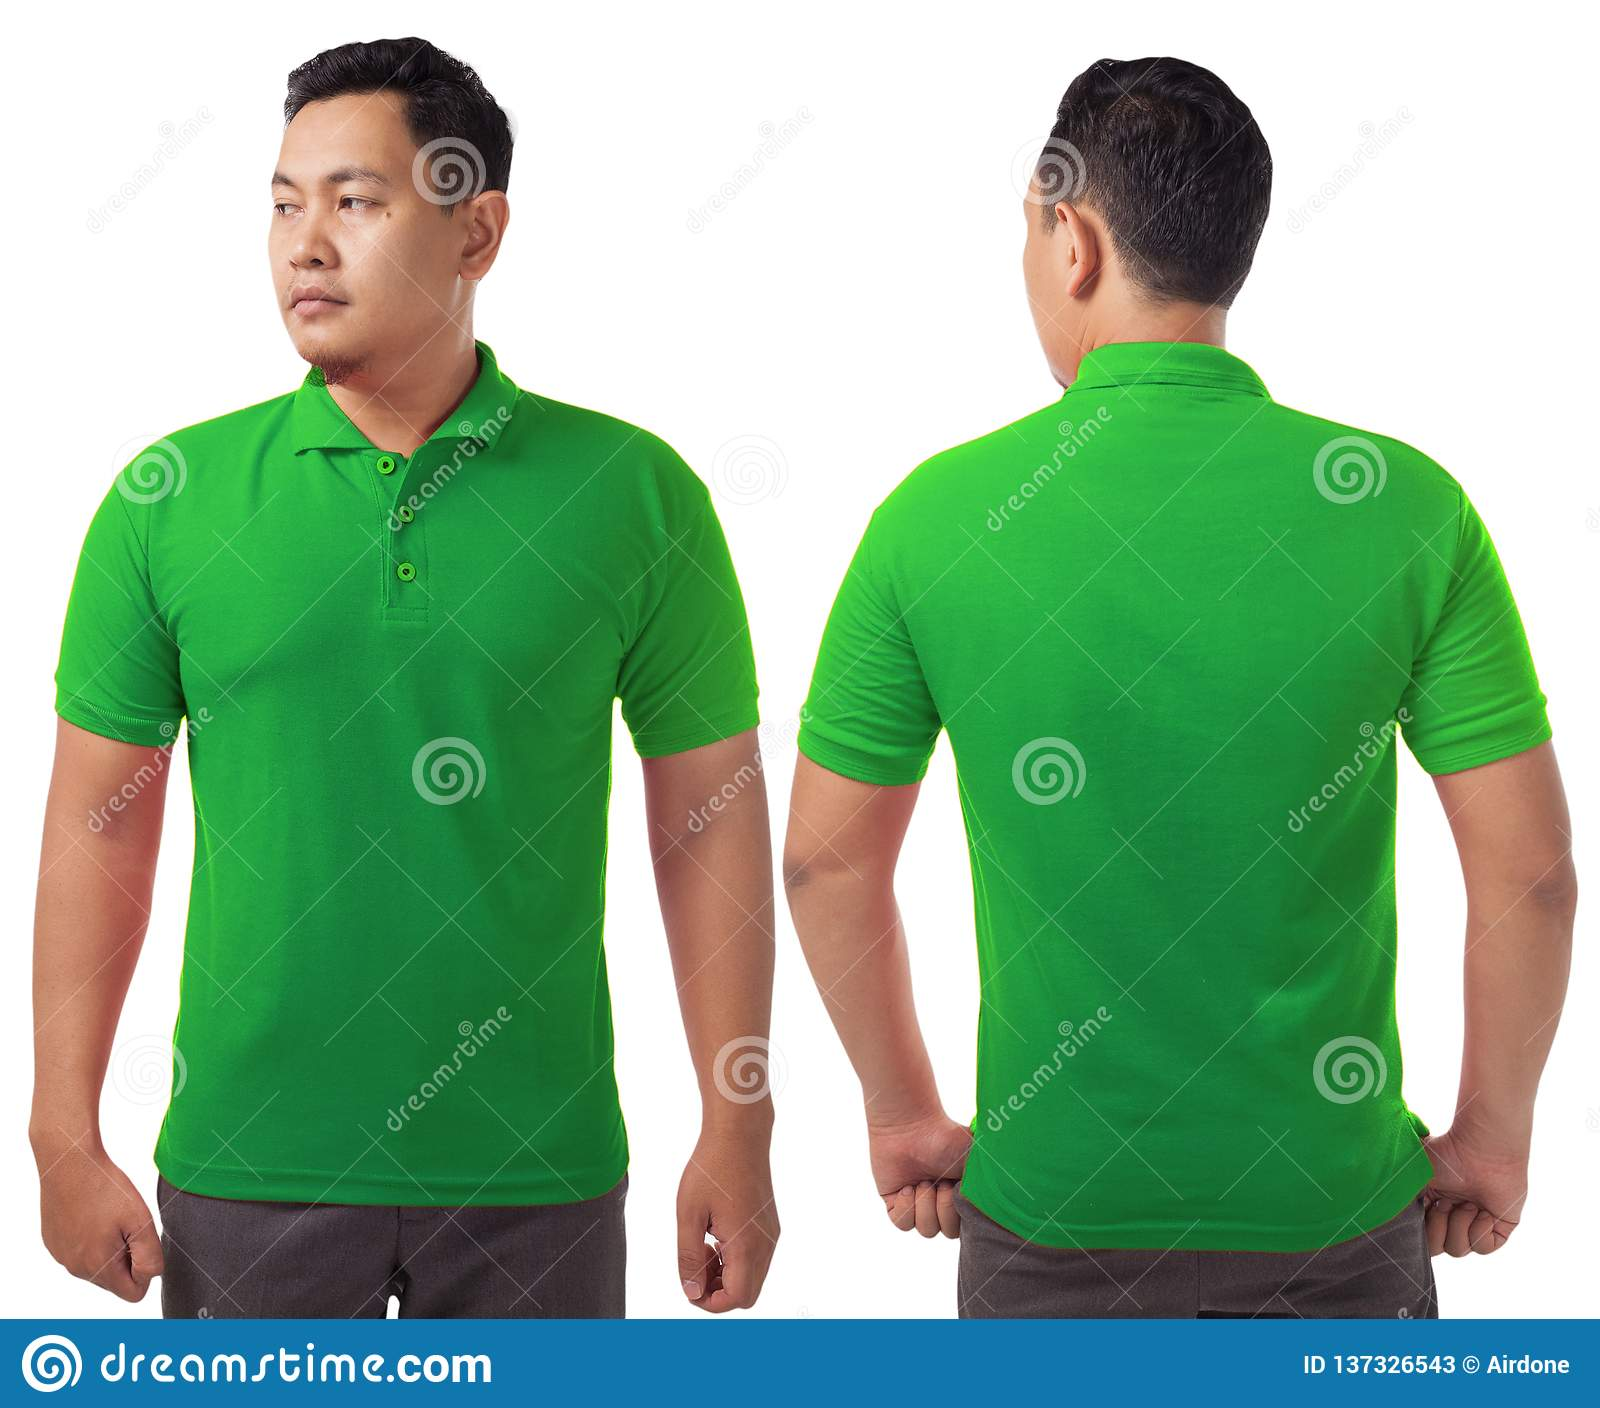 Green Collared Shirt T Shirts Design Concept